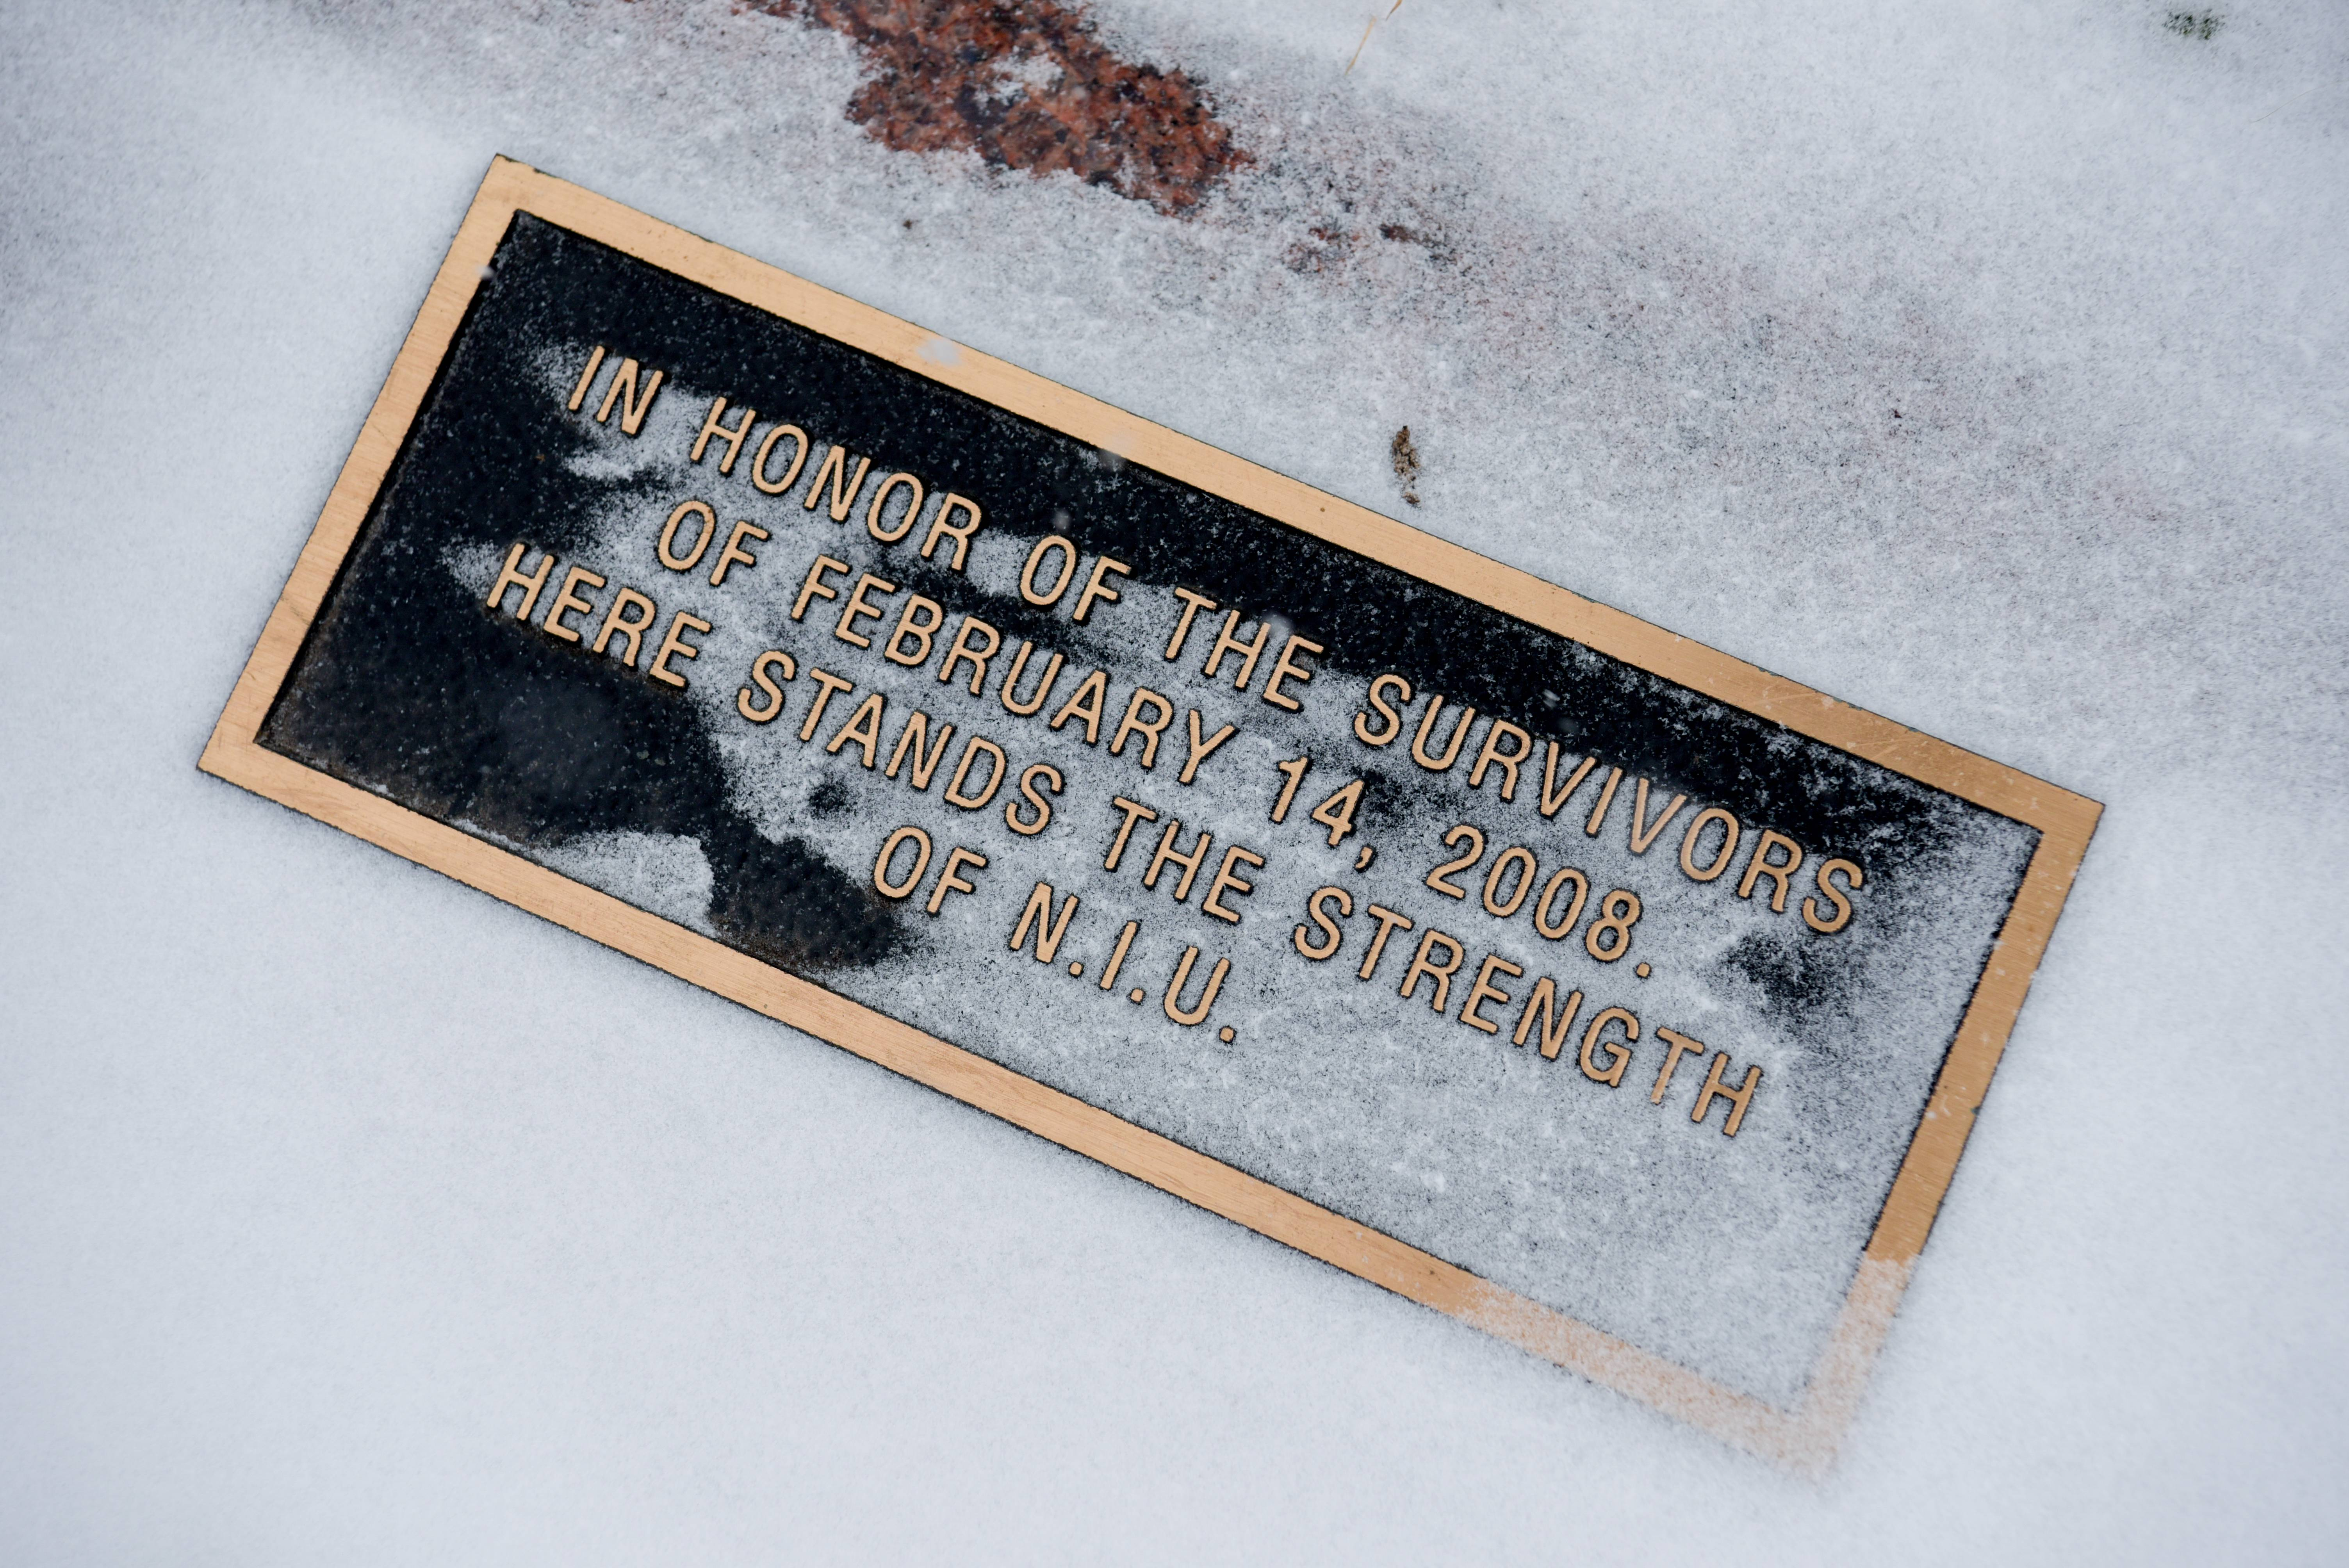 The names of the five students killed a decade ago in the shooting at Northern Illinois University are carved in granite. This plaque adorns a tree that was planted to honor the strength of the survivors.